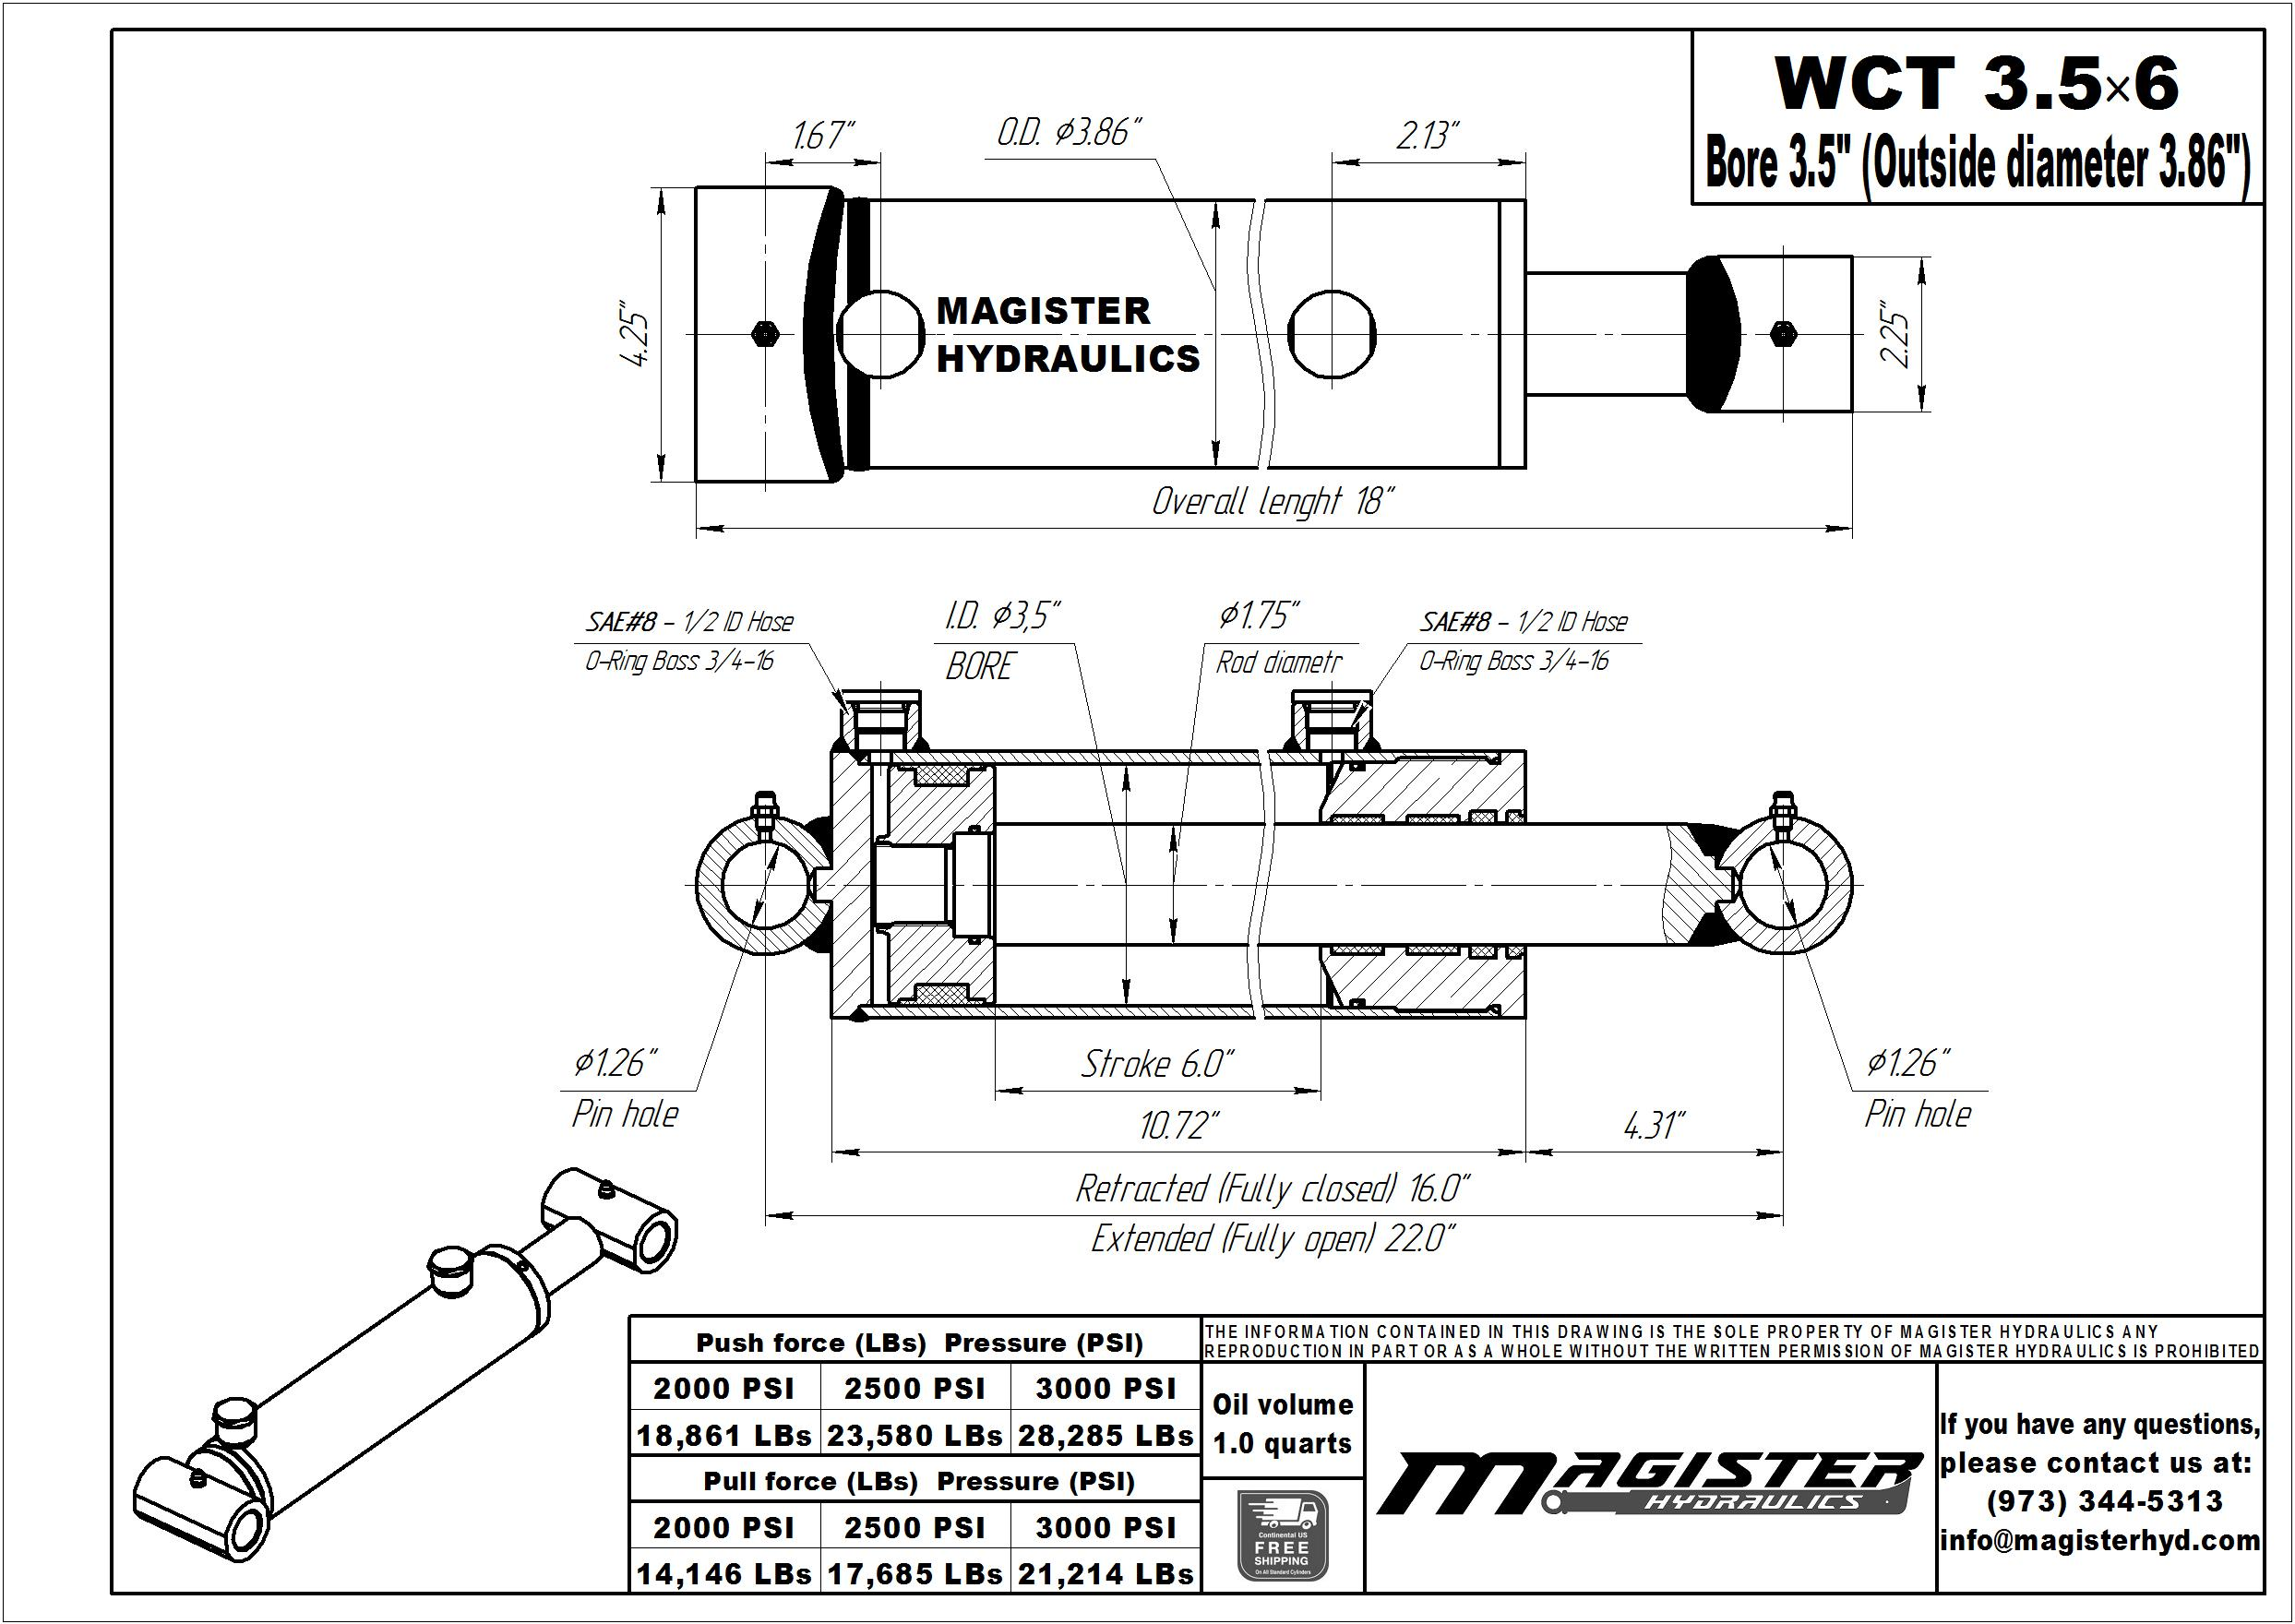 3.5 bore x 6 stroke hydraulic cylinder, welded cross tube double acting cylinder | Magister Hydraulics